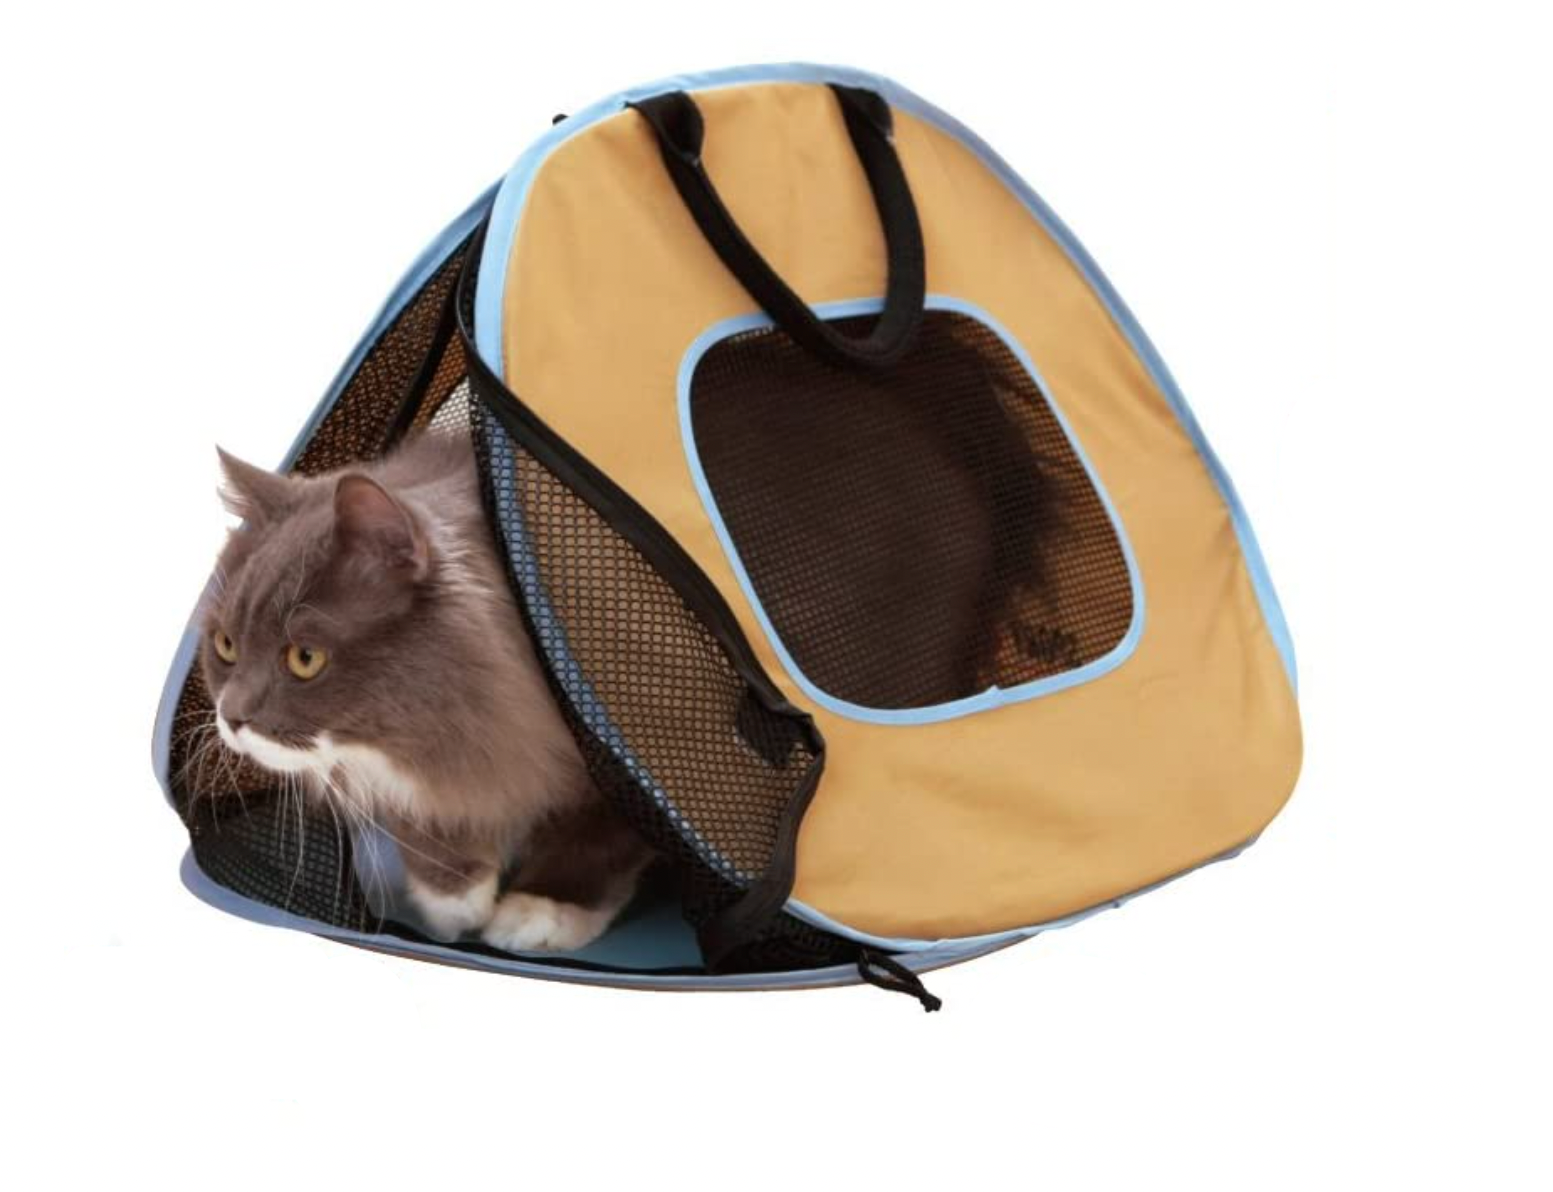 NECO ICHI Cat First Portable Carrier